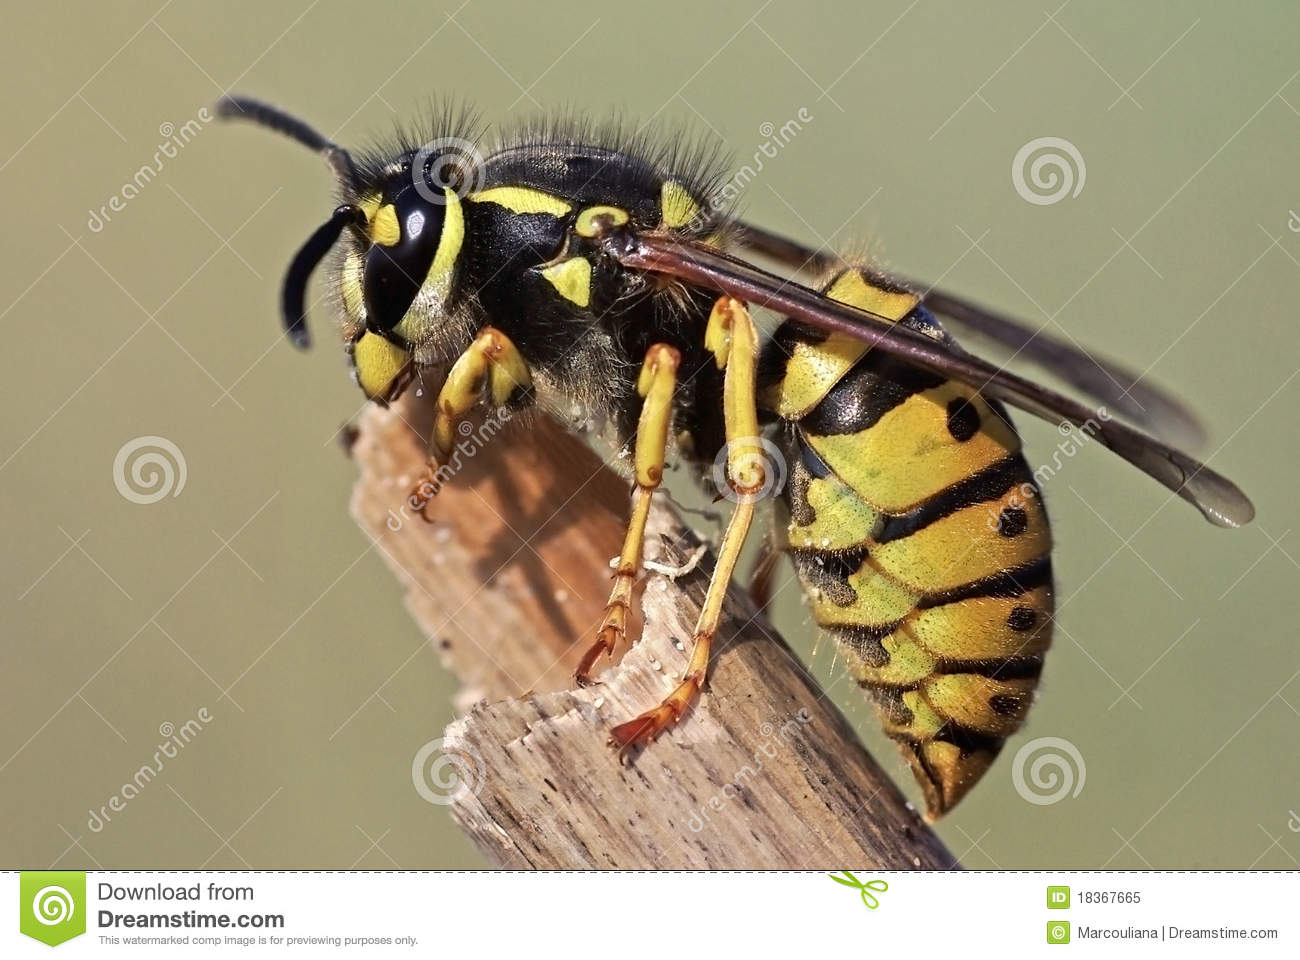 Download Wasp stock image. Image of germanica, paper, sting, buzz - 18367665